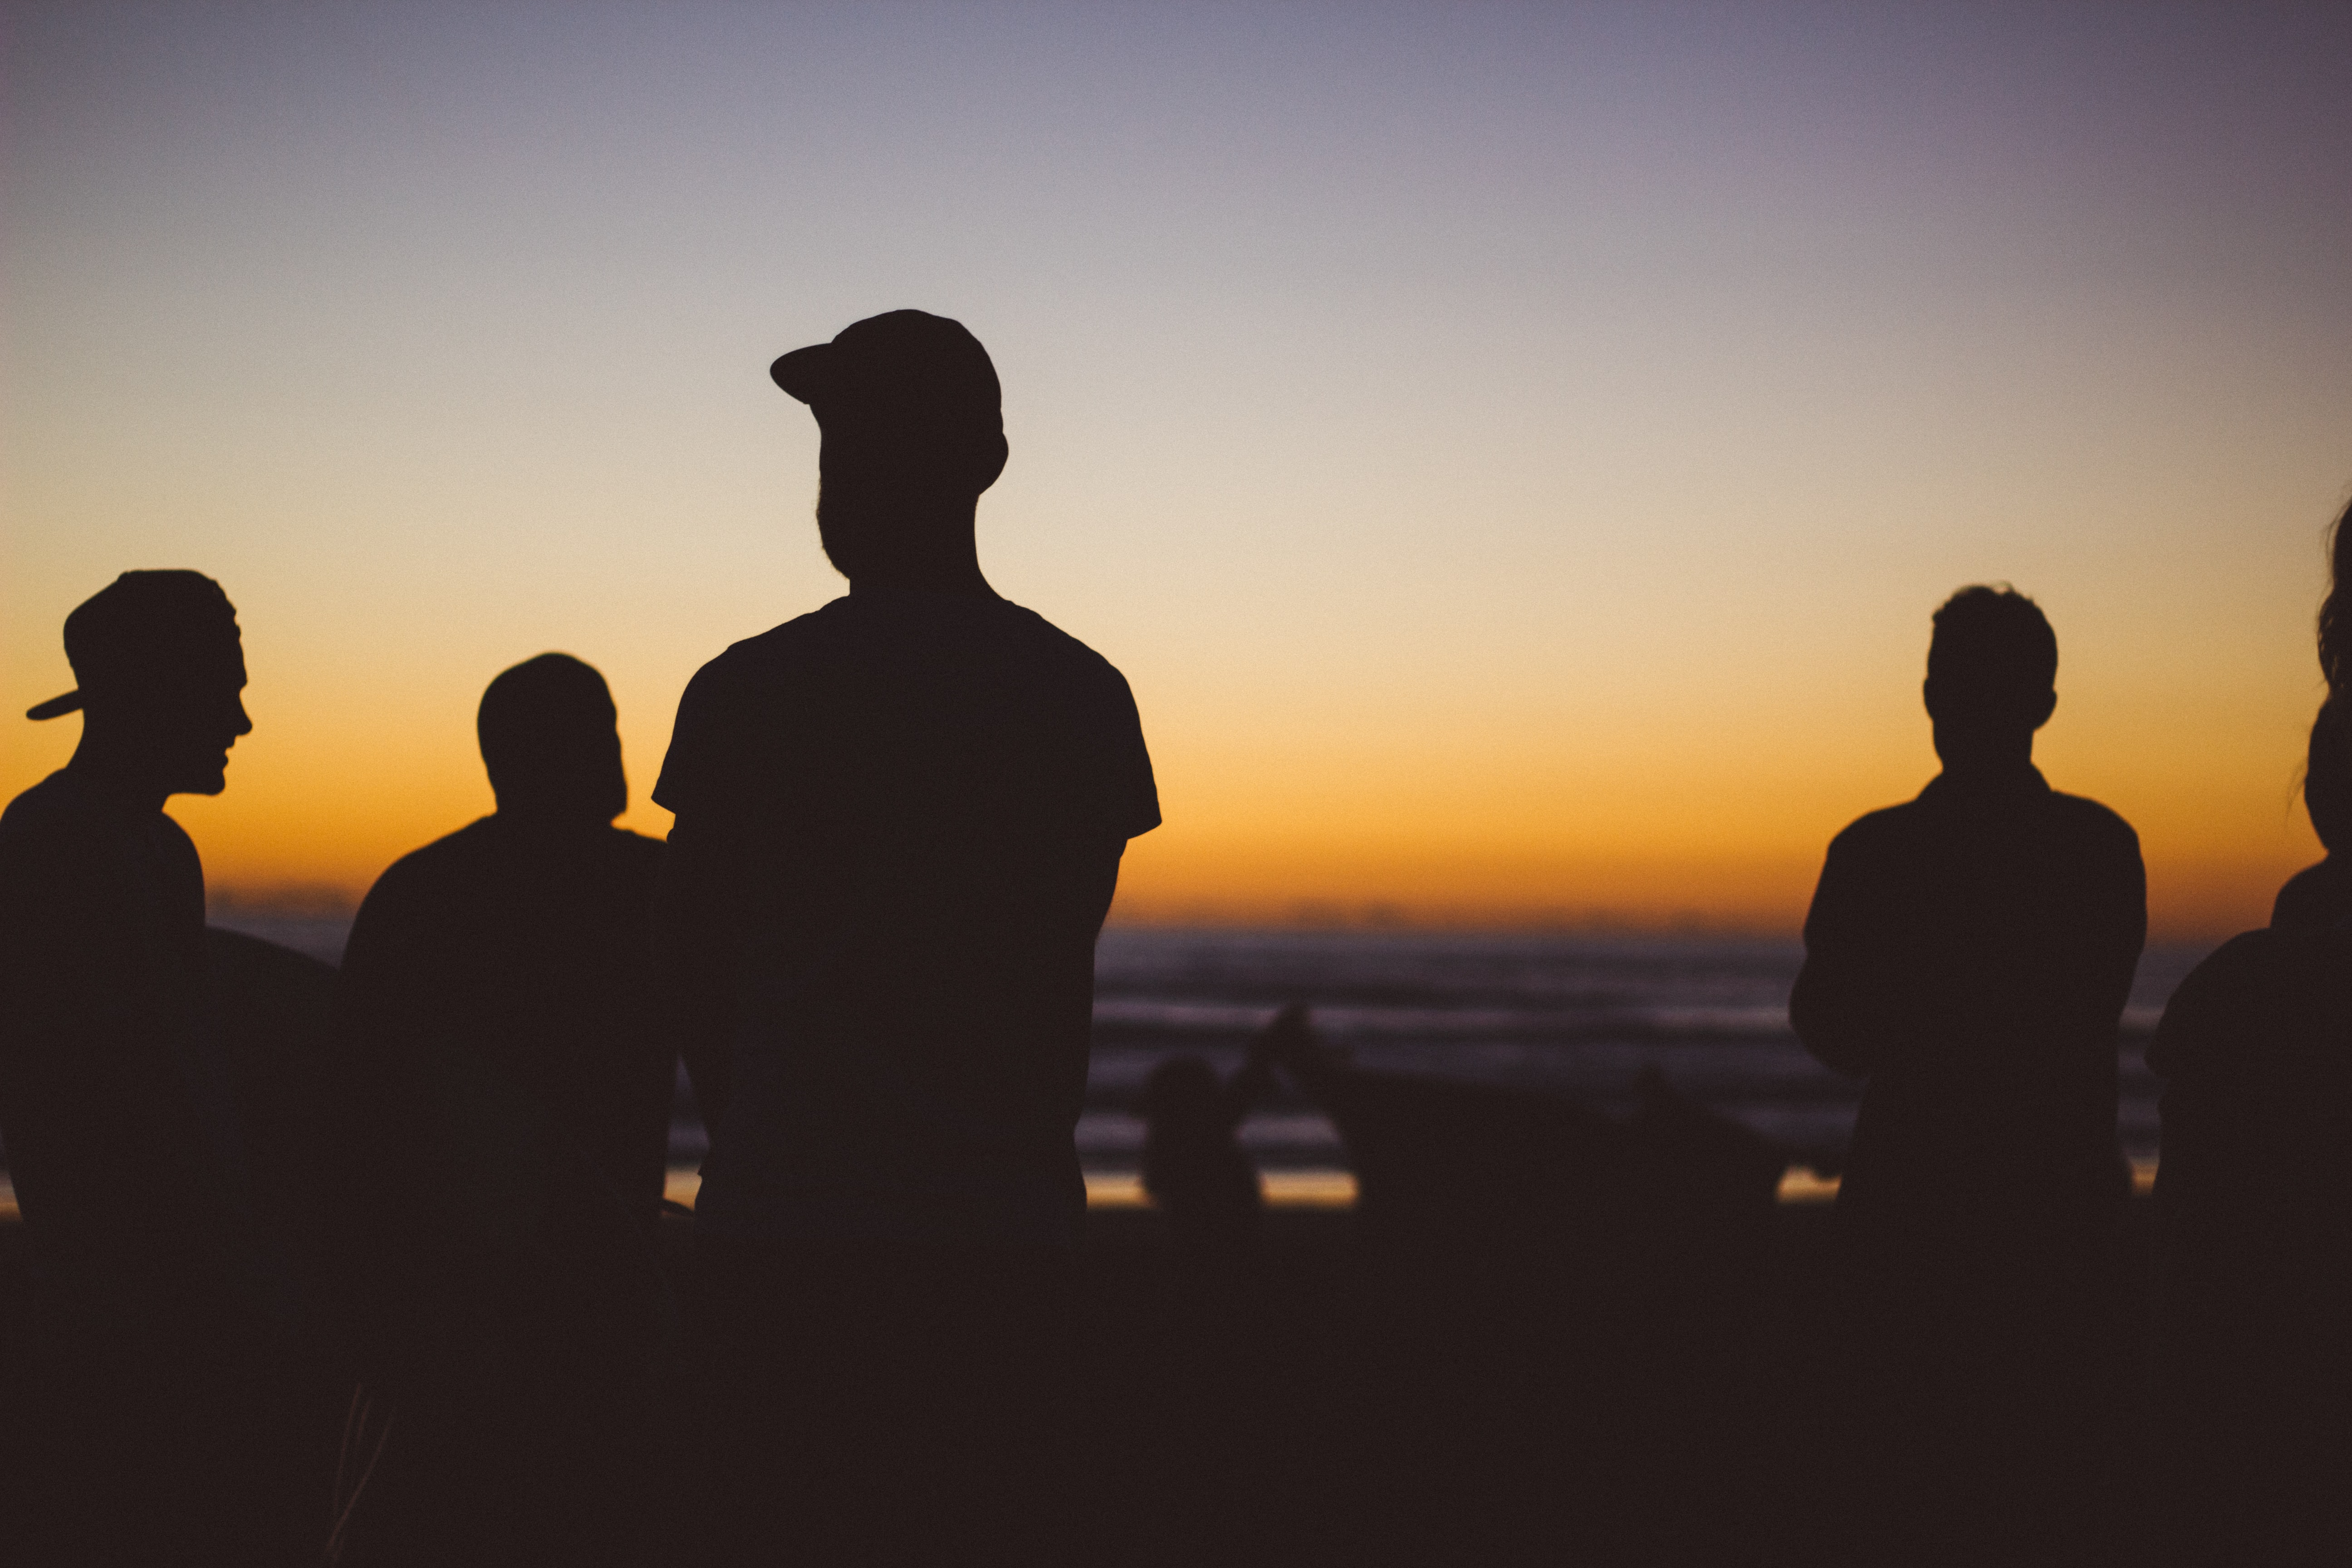 Silhouettes of a group of men standing on Piha Beach during sunset